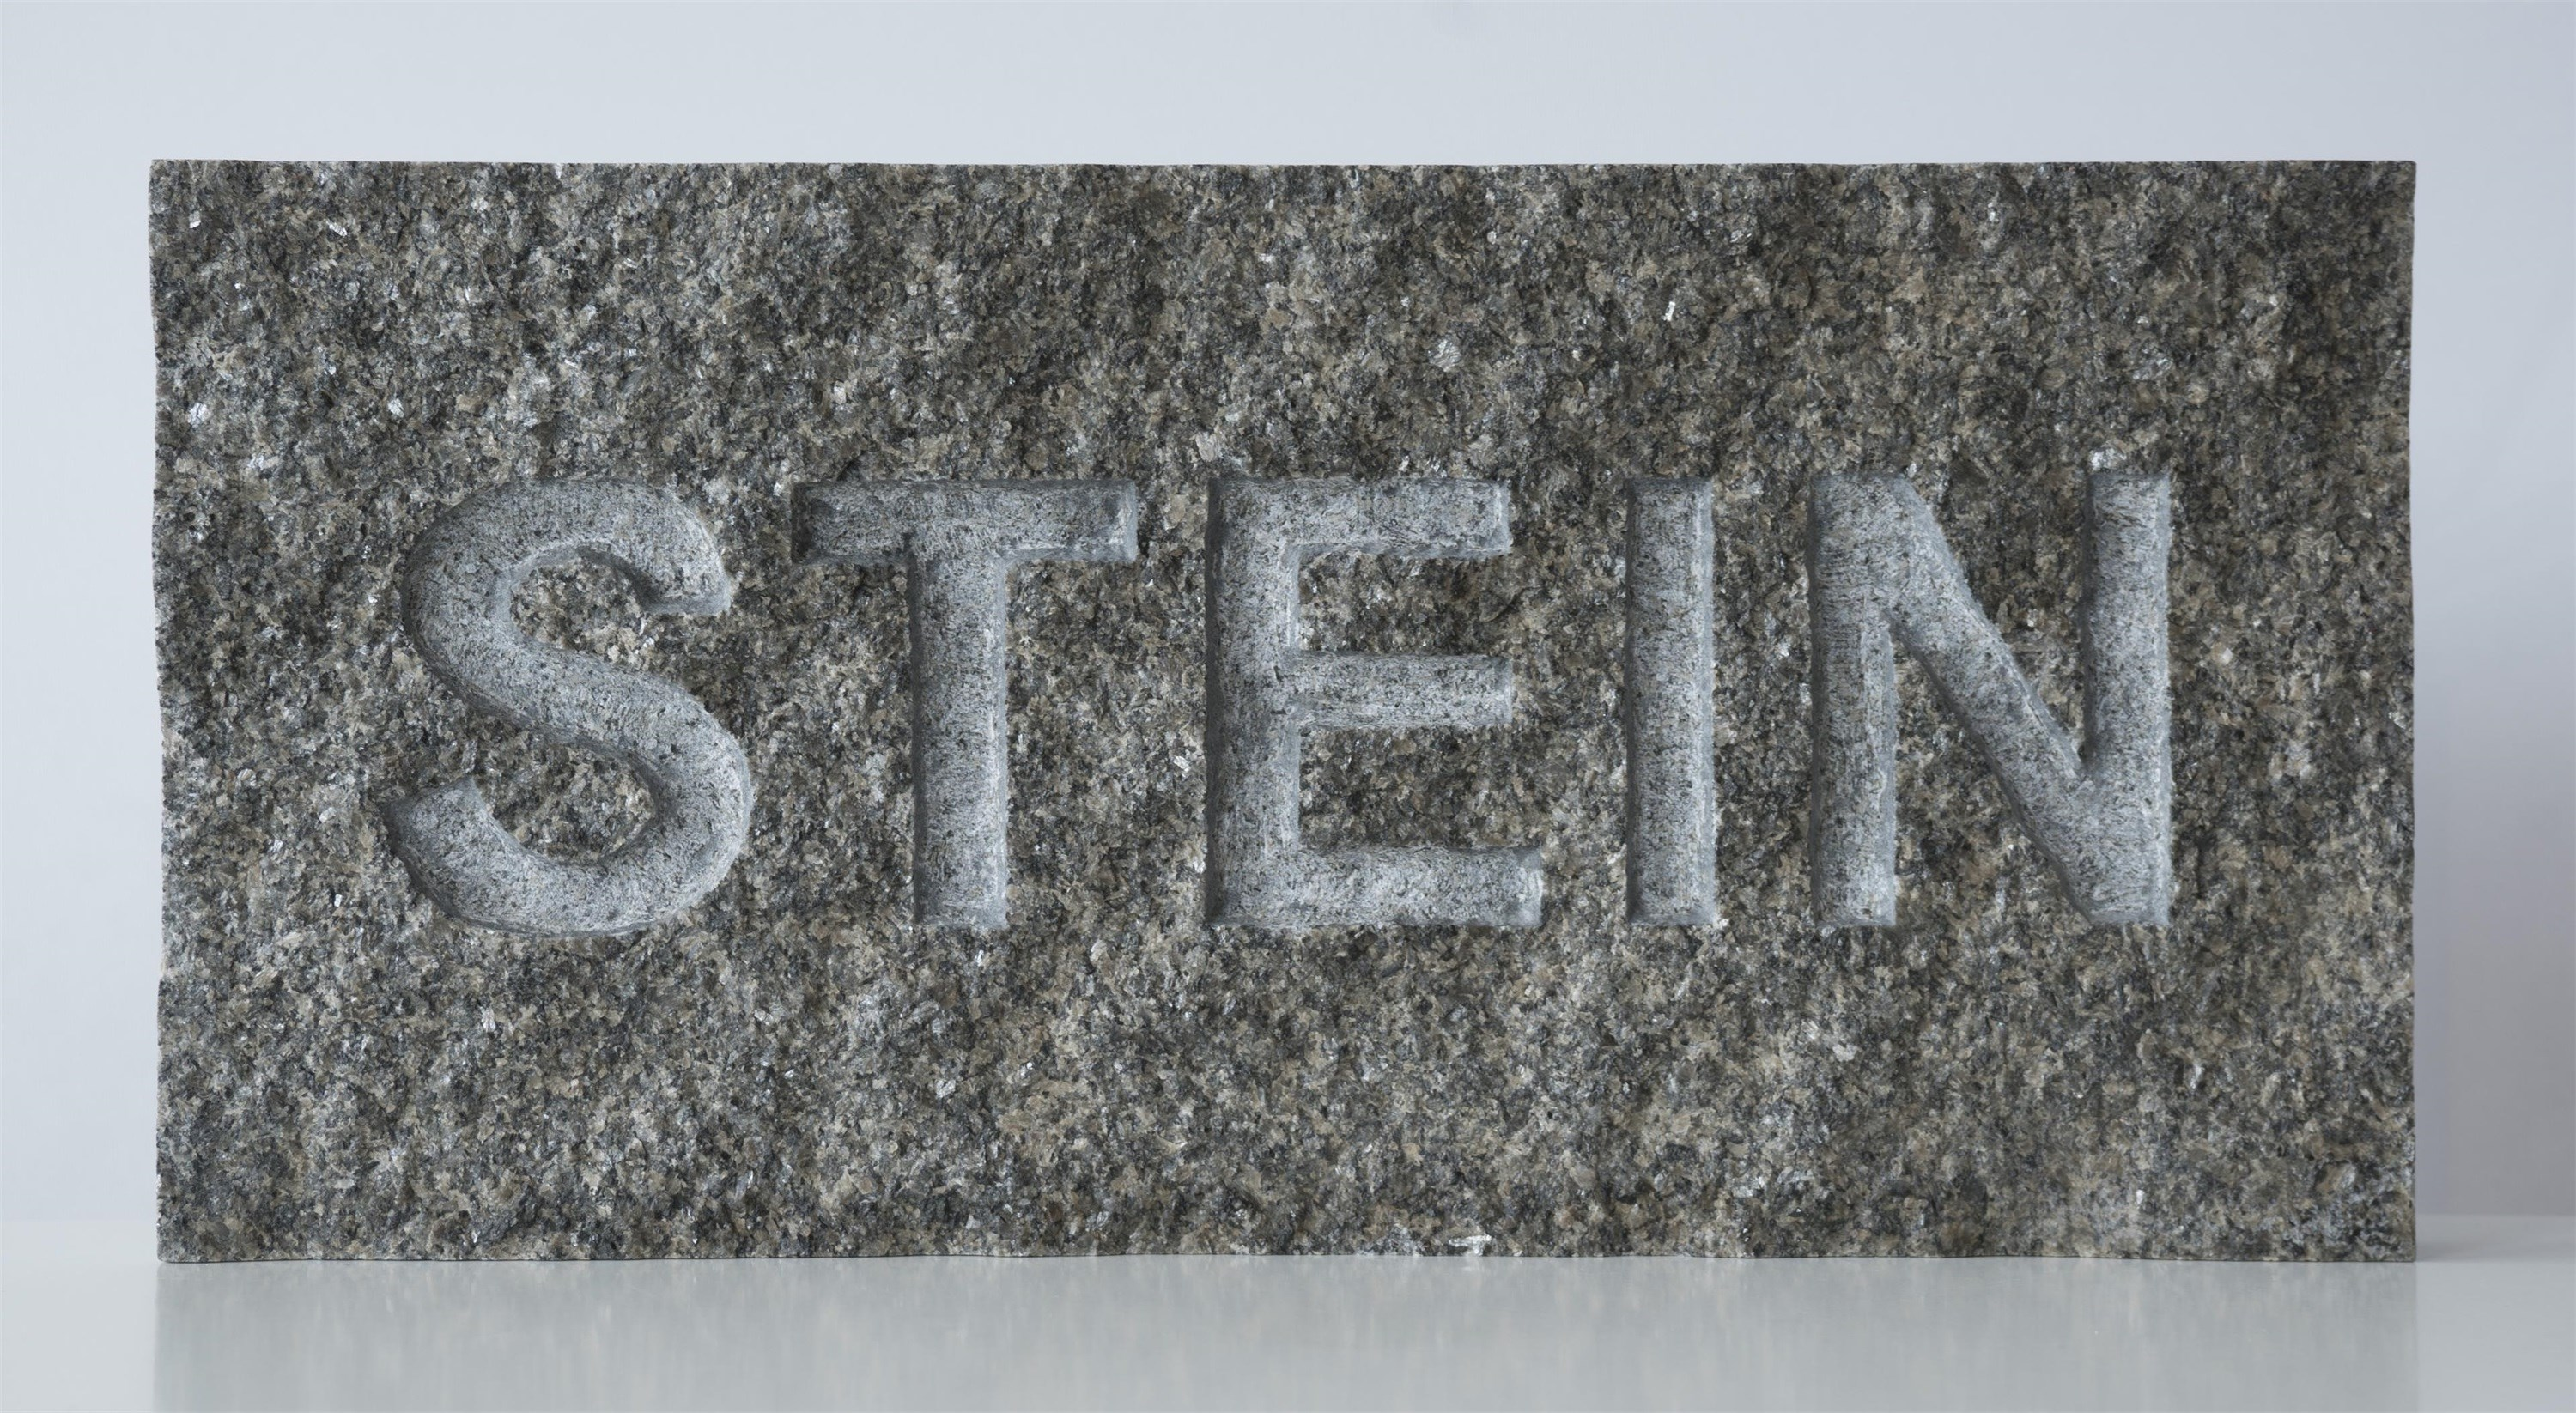 "Stein als Wort (Stone as a Word; on request also a version with the word ""STONE""), original Avant-Garde Stone Sculpture by Goeth Zilla"